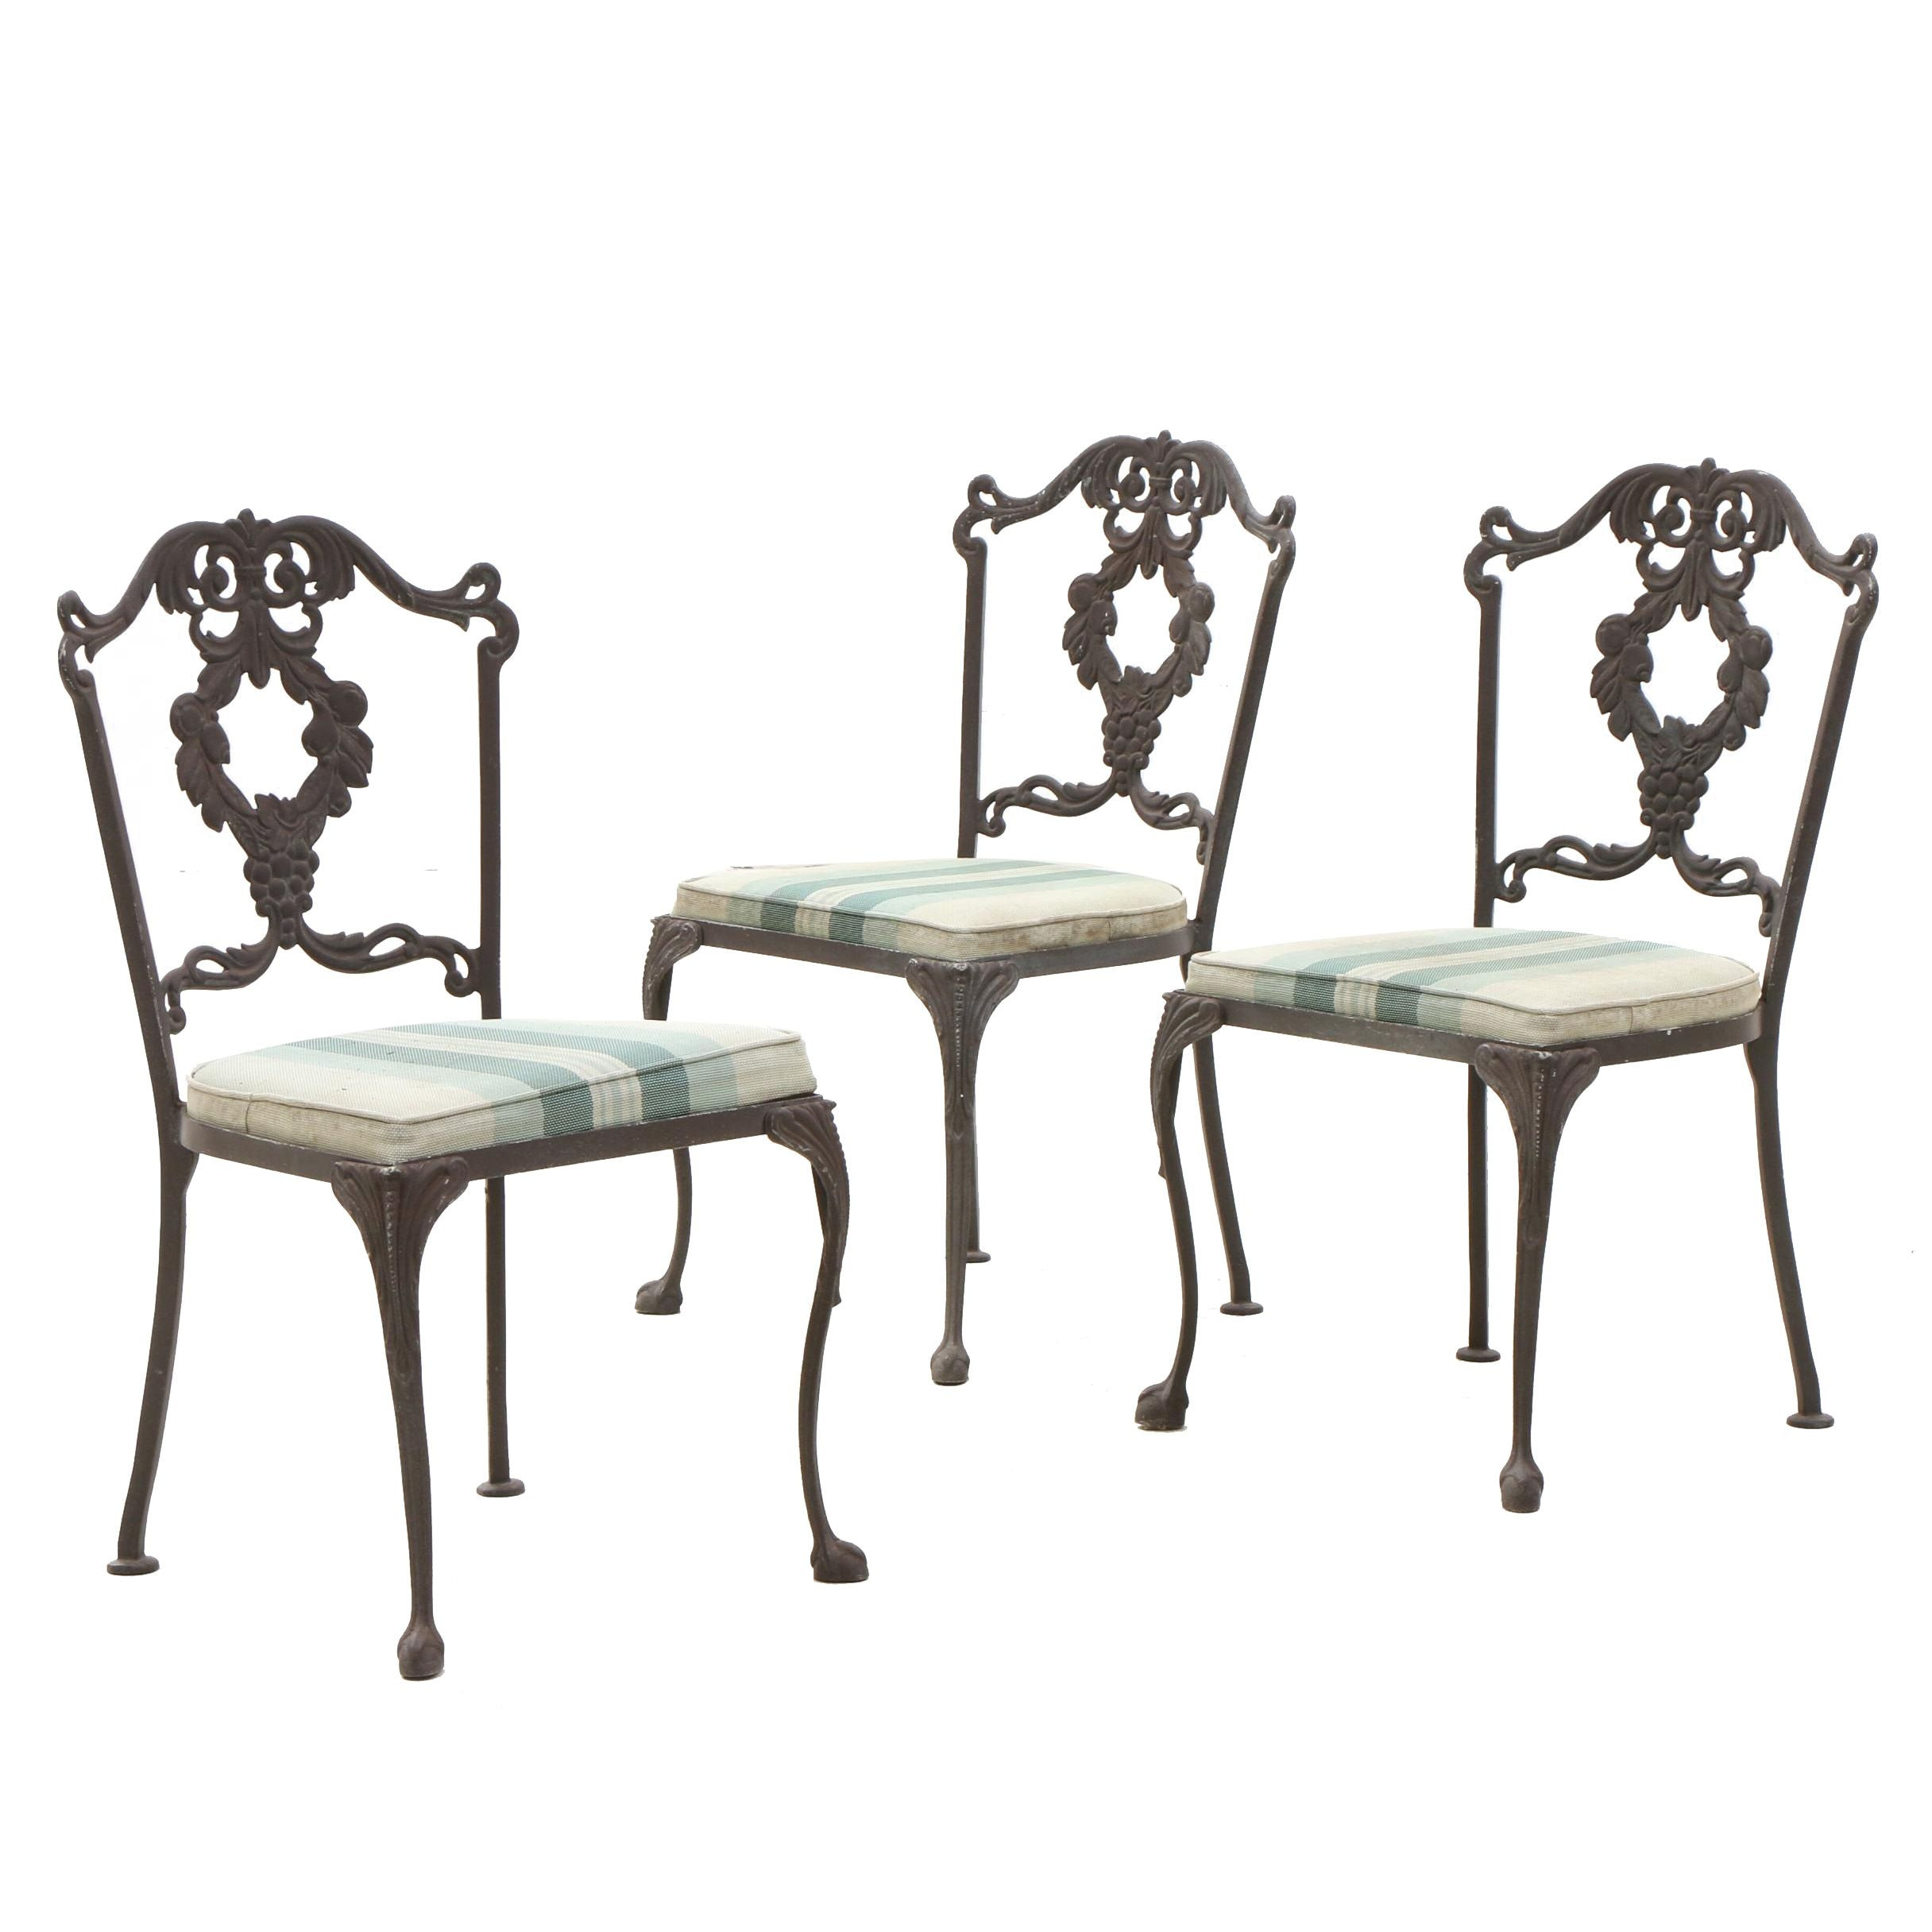 Chippendale Style Cast Iron Patio Chairs with Seat Cushions, Circa 1940s